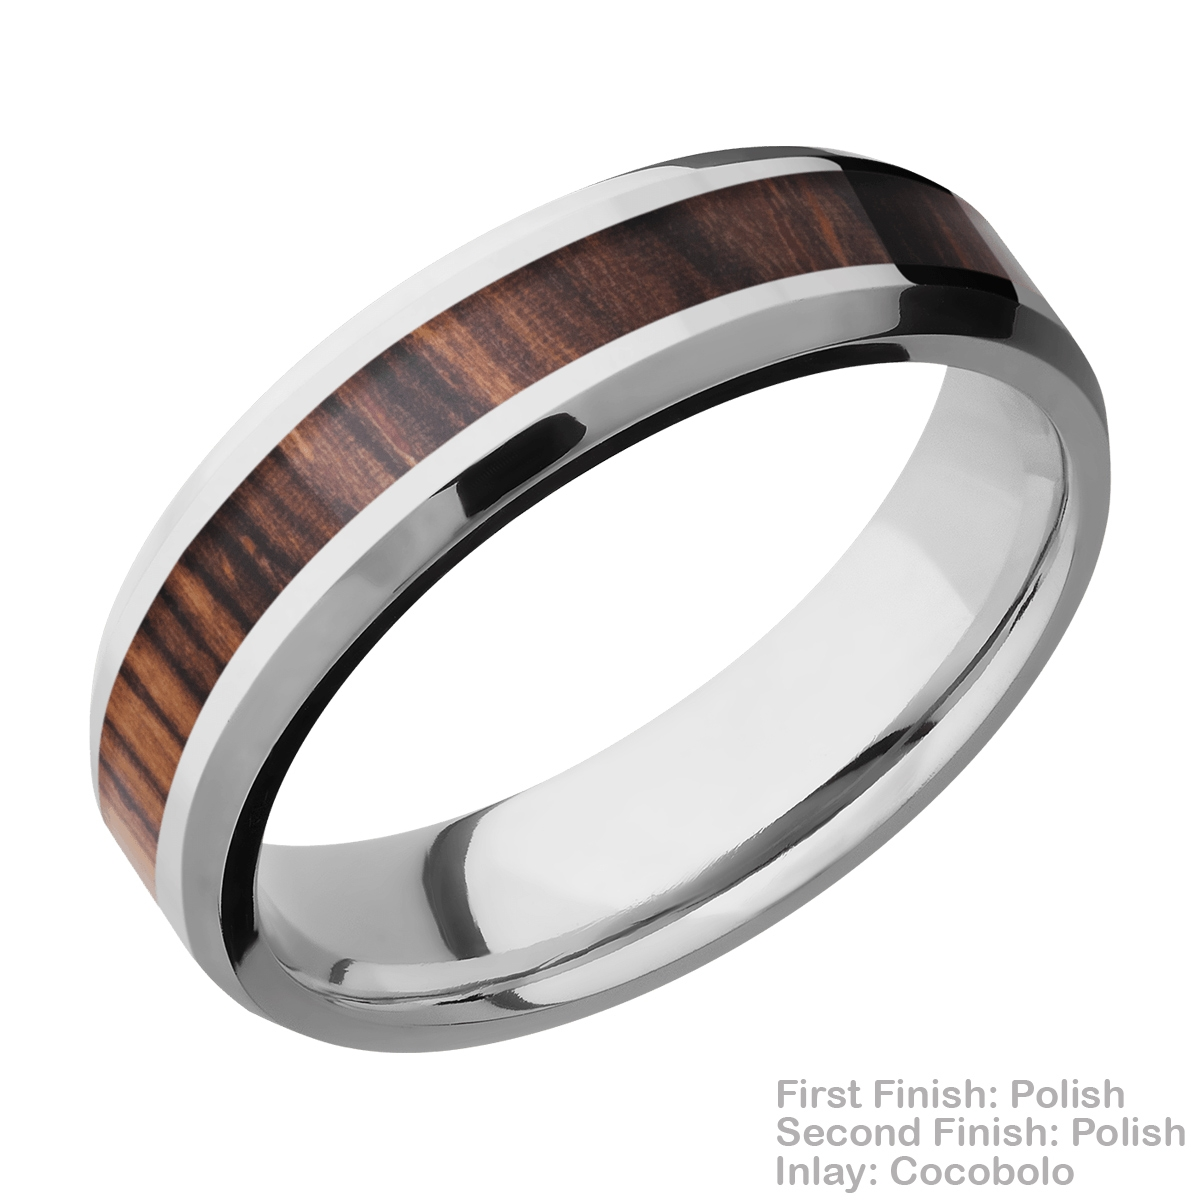 Lashbrook CC6B13(NS)/HARDWOOD Cobalt Chrome Wedding Ring or Band Alternative View 11